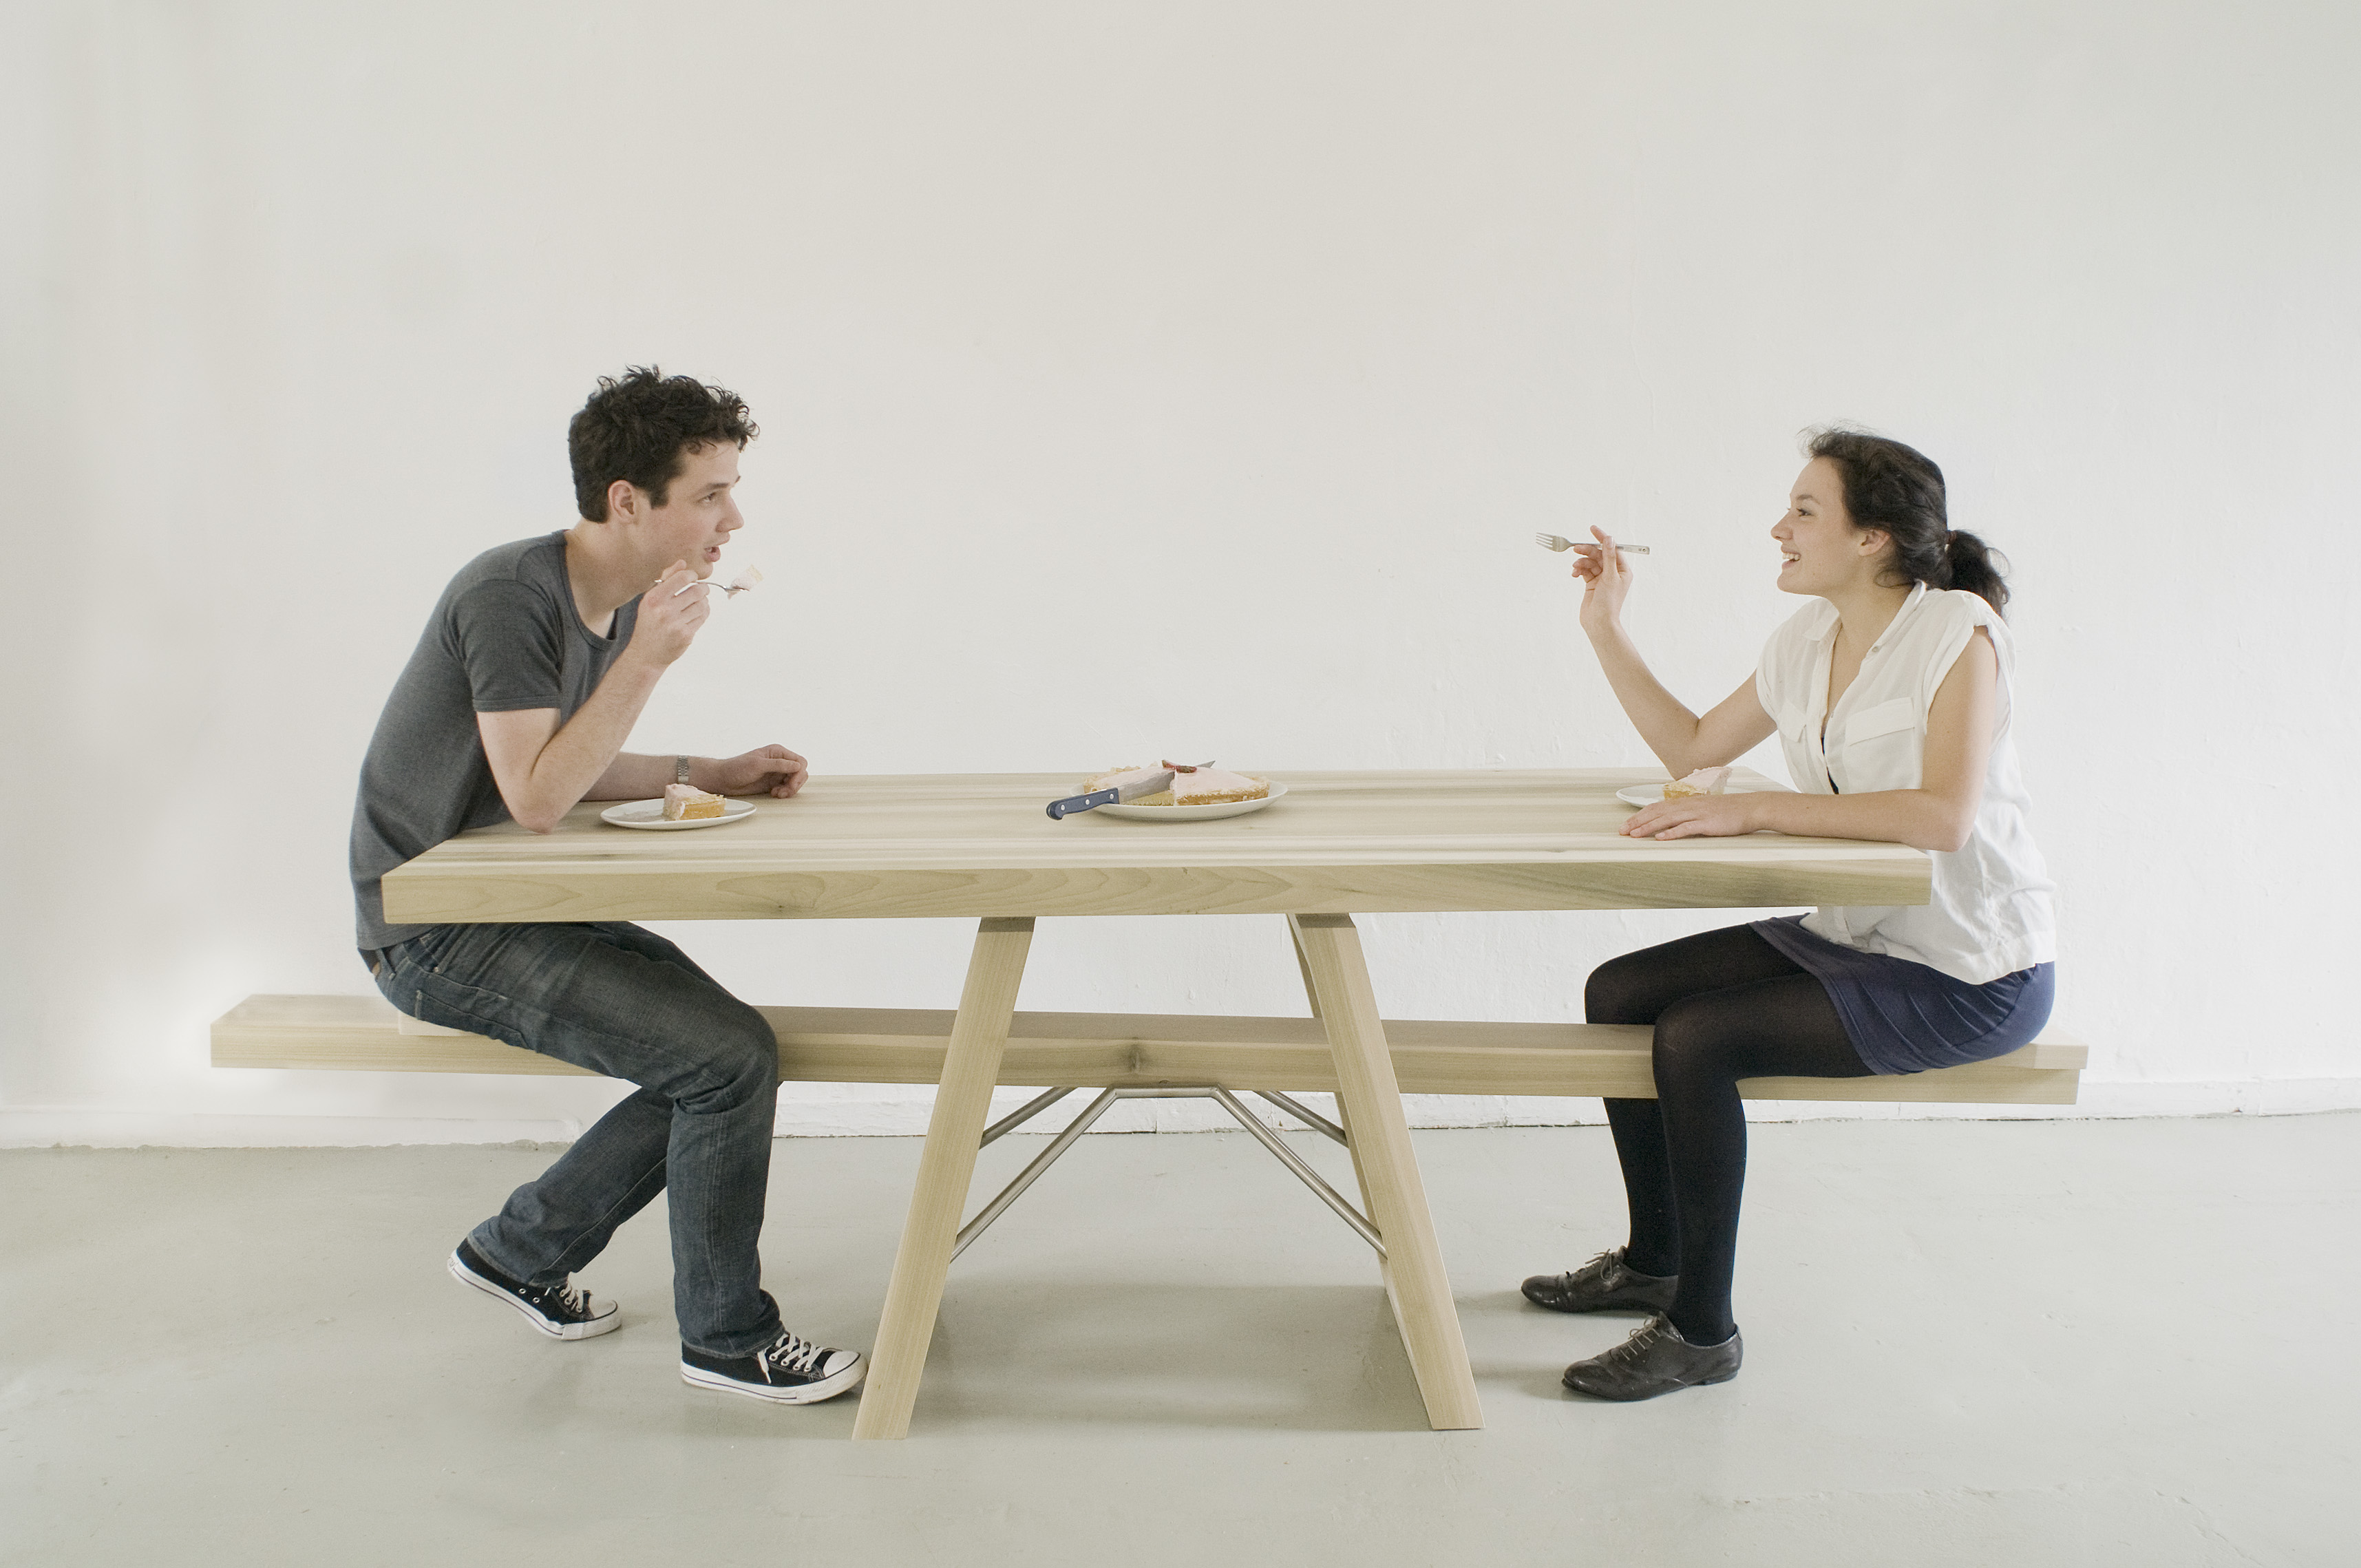 Courtesytable a wooden picnic style table with novel for Table une personne